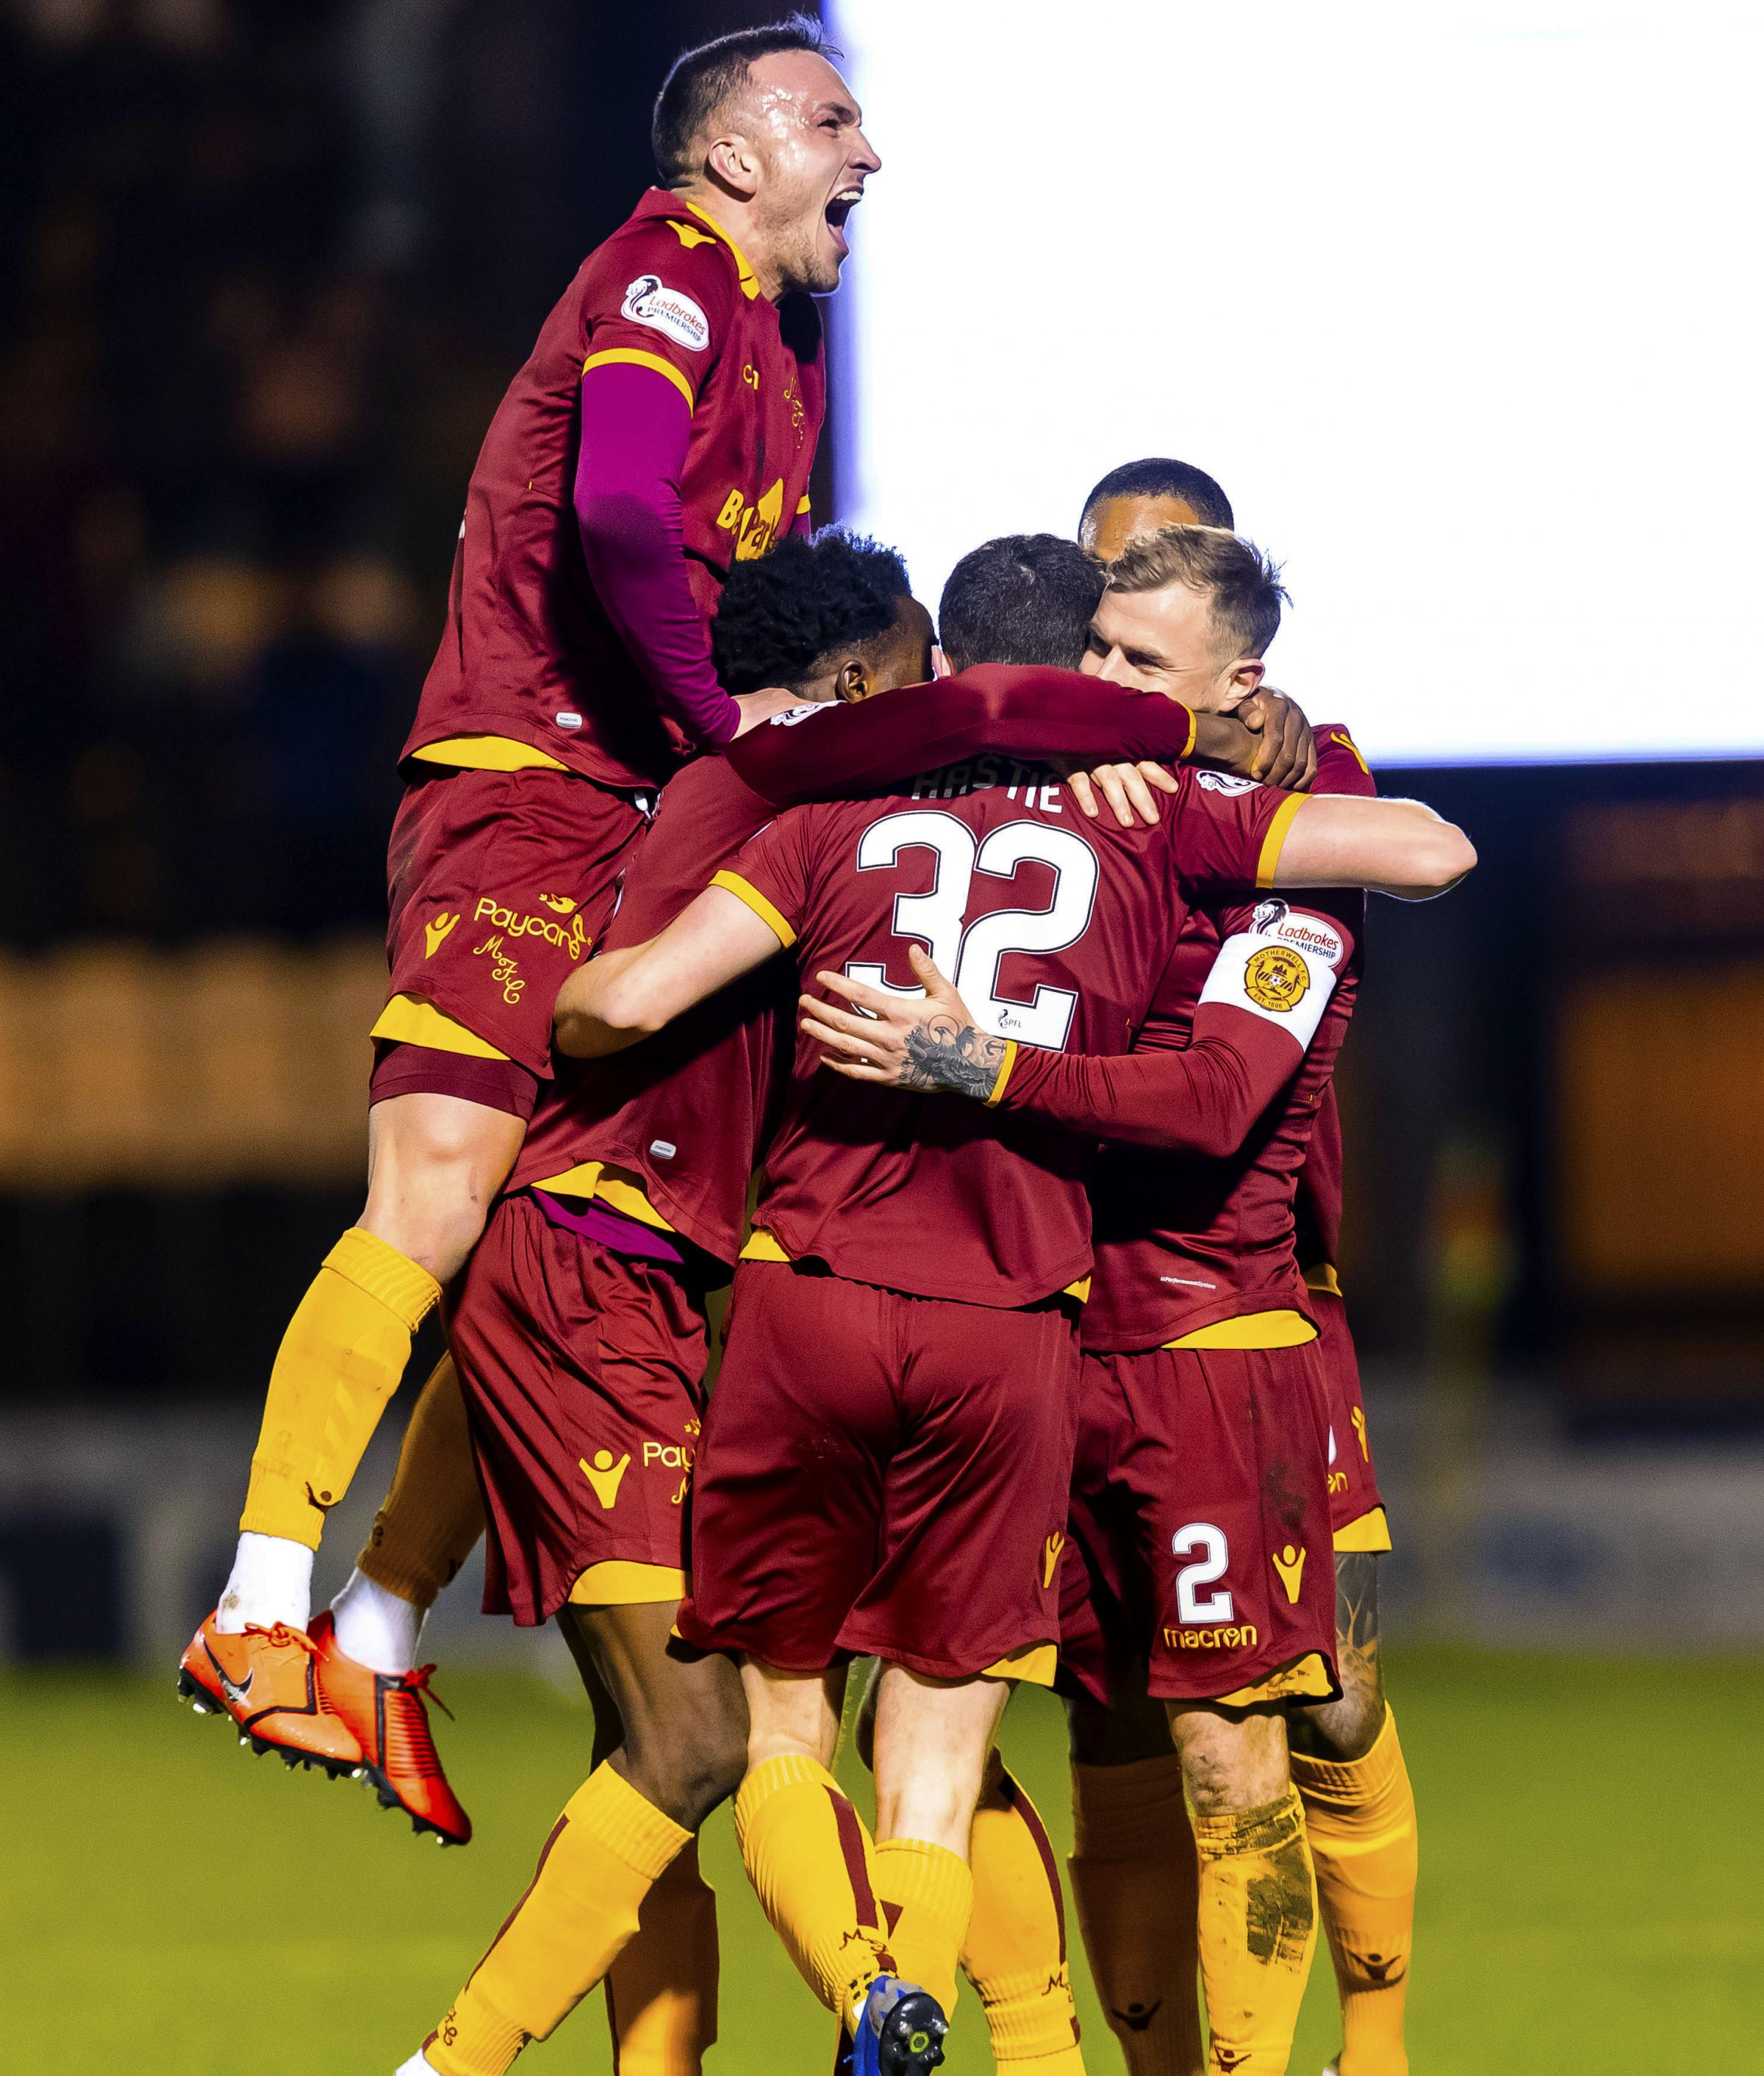 06/02/19 LADBROKES PREMIERSHIP.ST MIRREN v MOTHERWELL.THE SIMPLE DIGITAL ARENA - PAISLEY.The Motherwell players surround Jake Hastie after his opening goal..